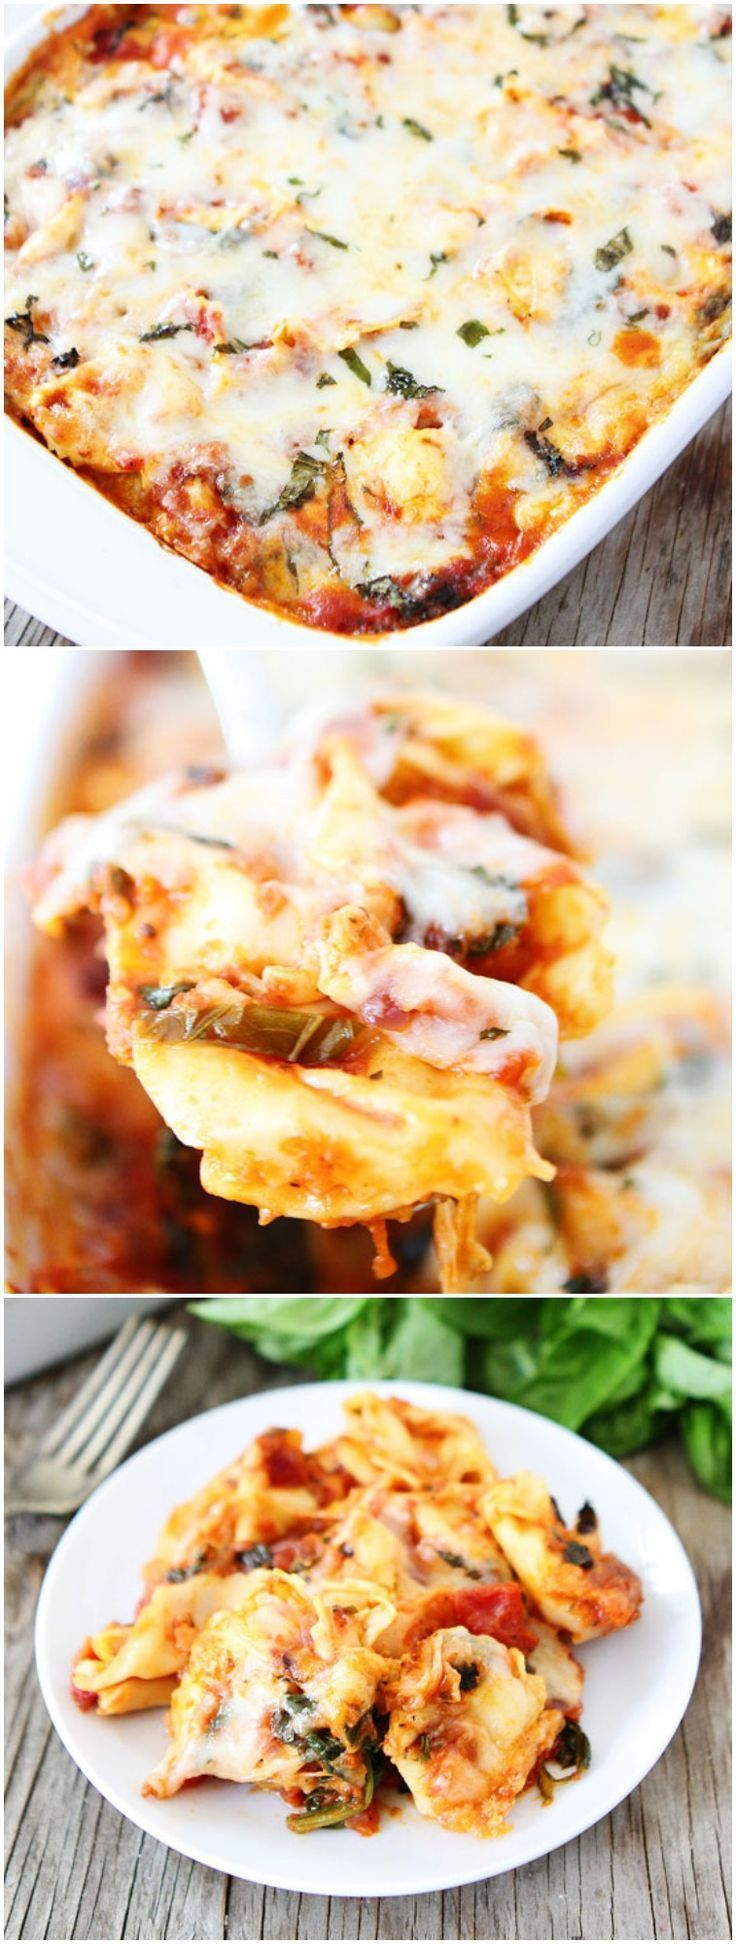 Easy Cheesy Baked Tortellini Recipe on http://twopeasandtheirpod.com Love this easy pasta bake! It's great for weeknight meals or easy entertaining!